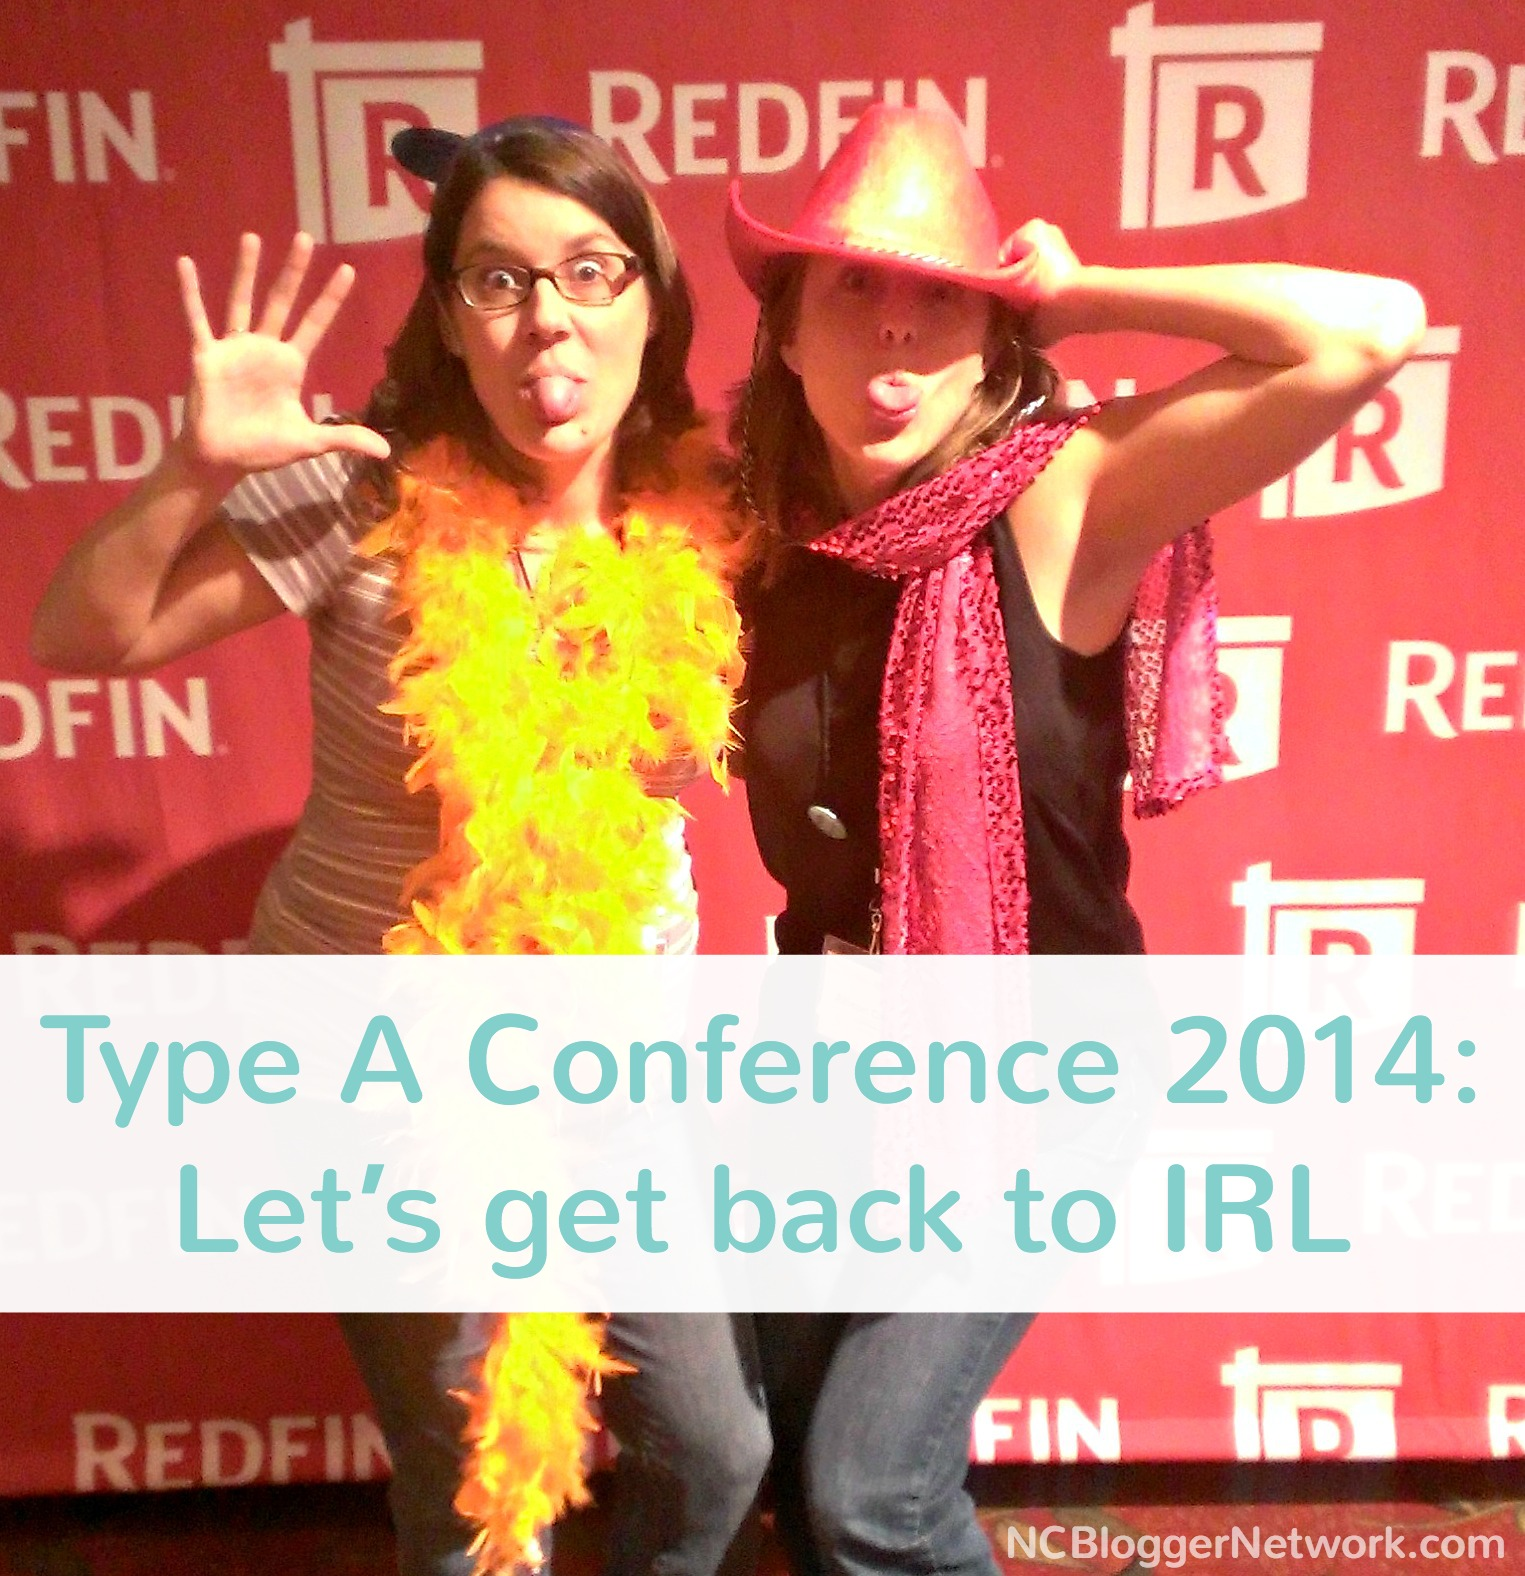 Type A Conference 2014: Getting Back to IRL